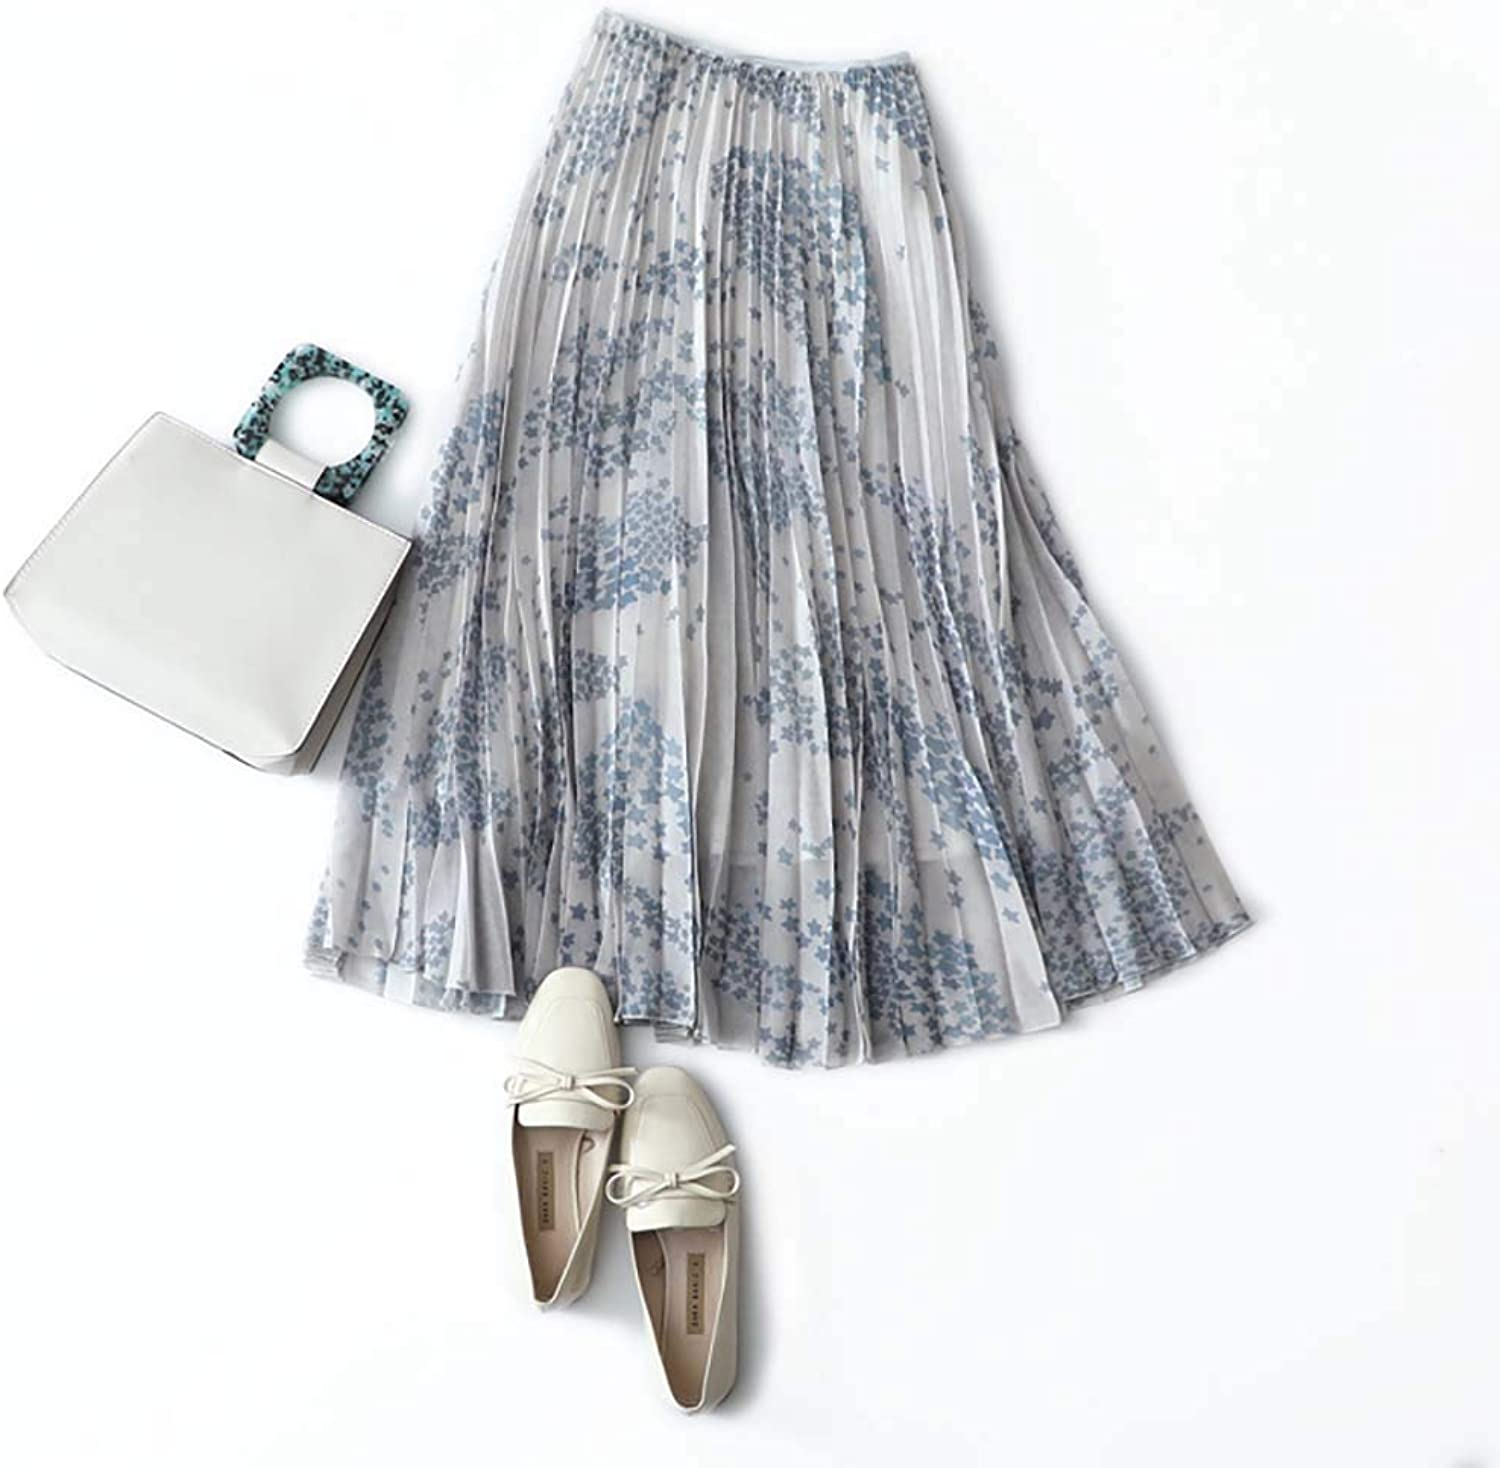 Skirt, Star Print, Long Temperament, High Waist, Pleated ALine Skirt